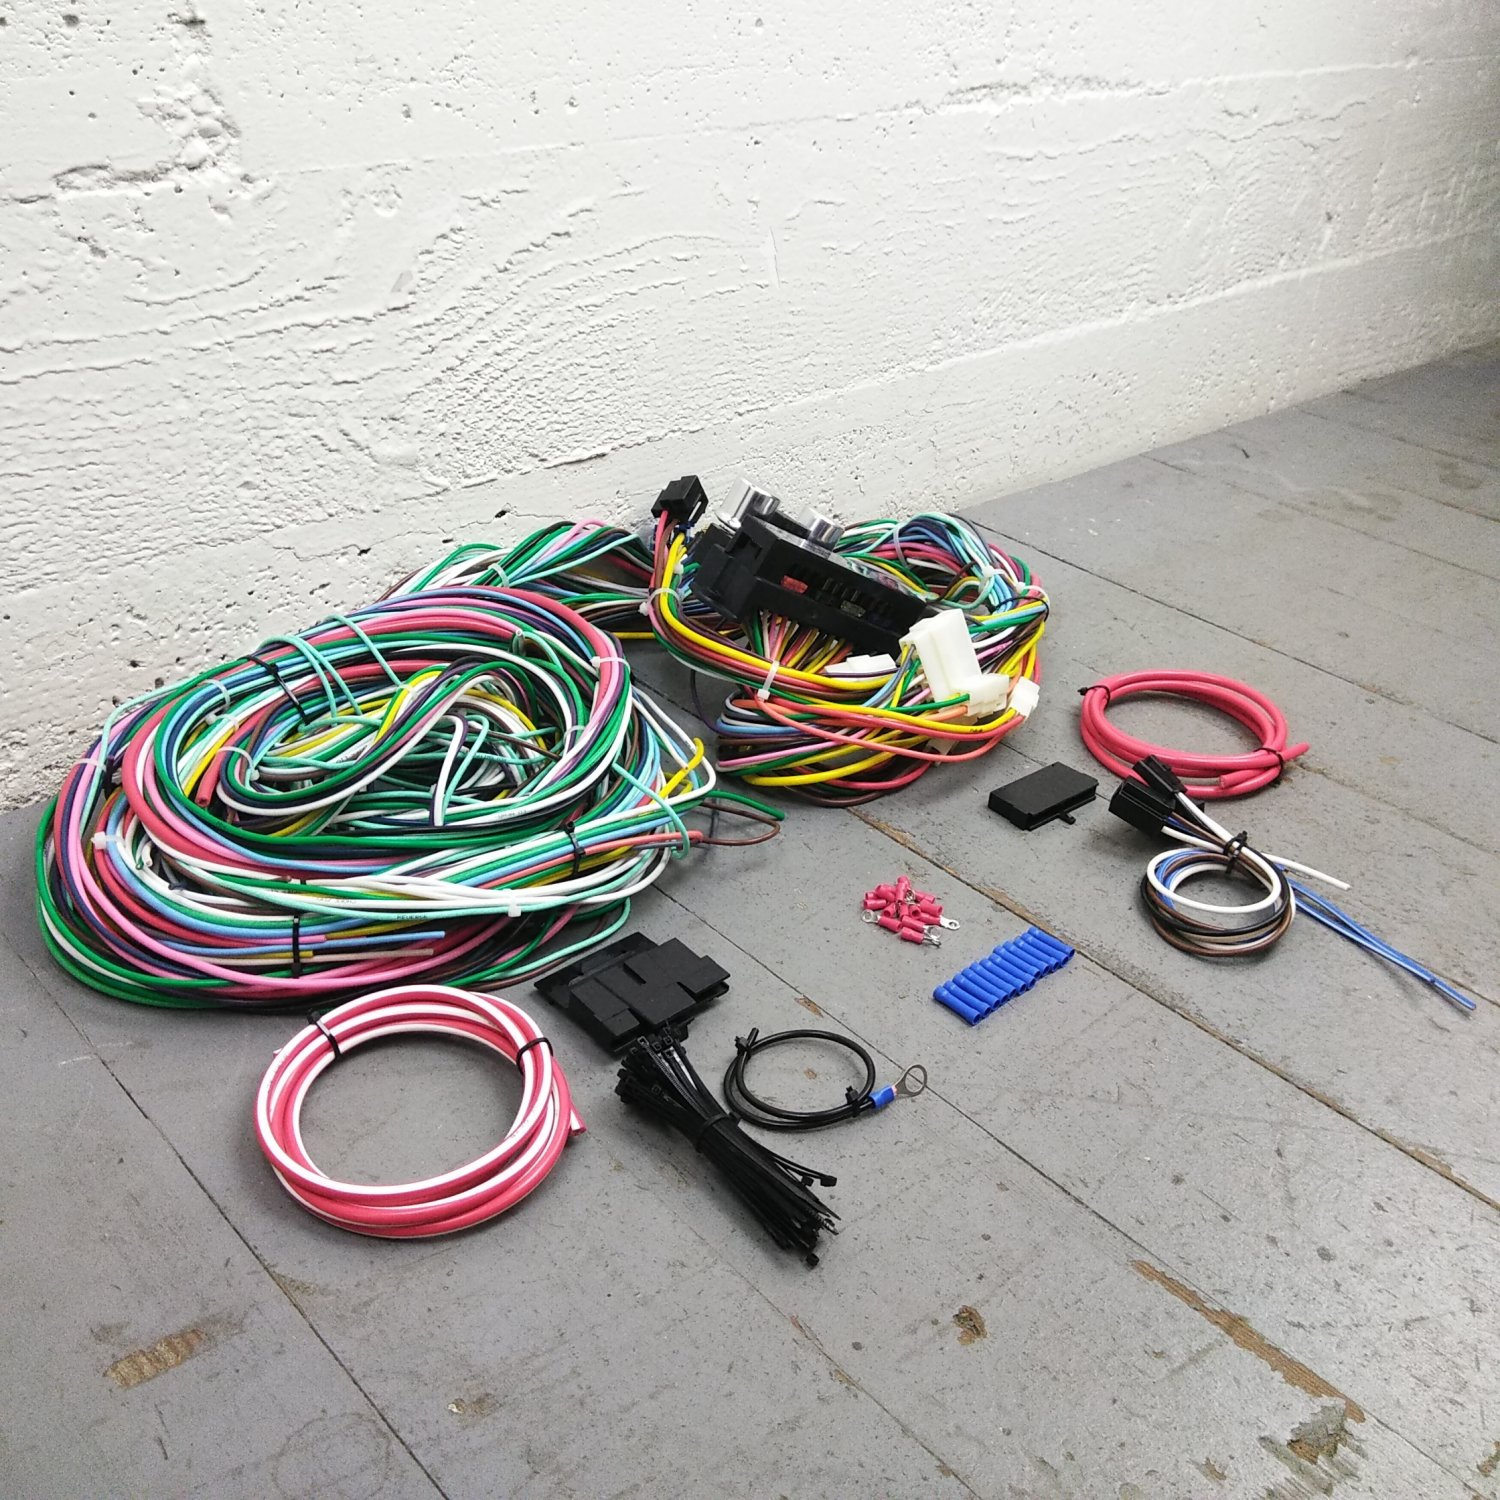 hight resolution of 1973 1979 ford truck 78 1979 bronco wire harness upgrade kit fits painless bar product description c